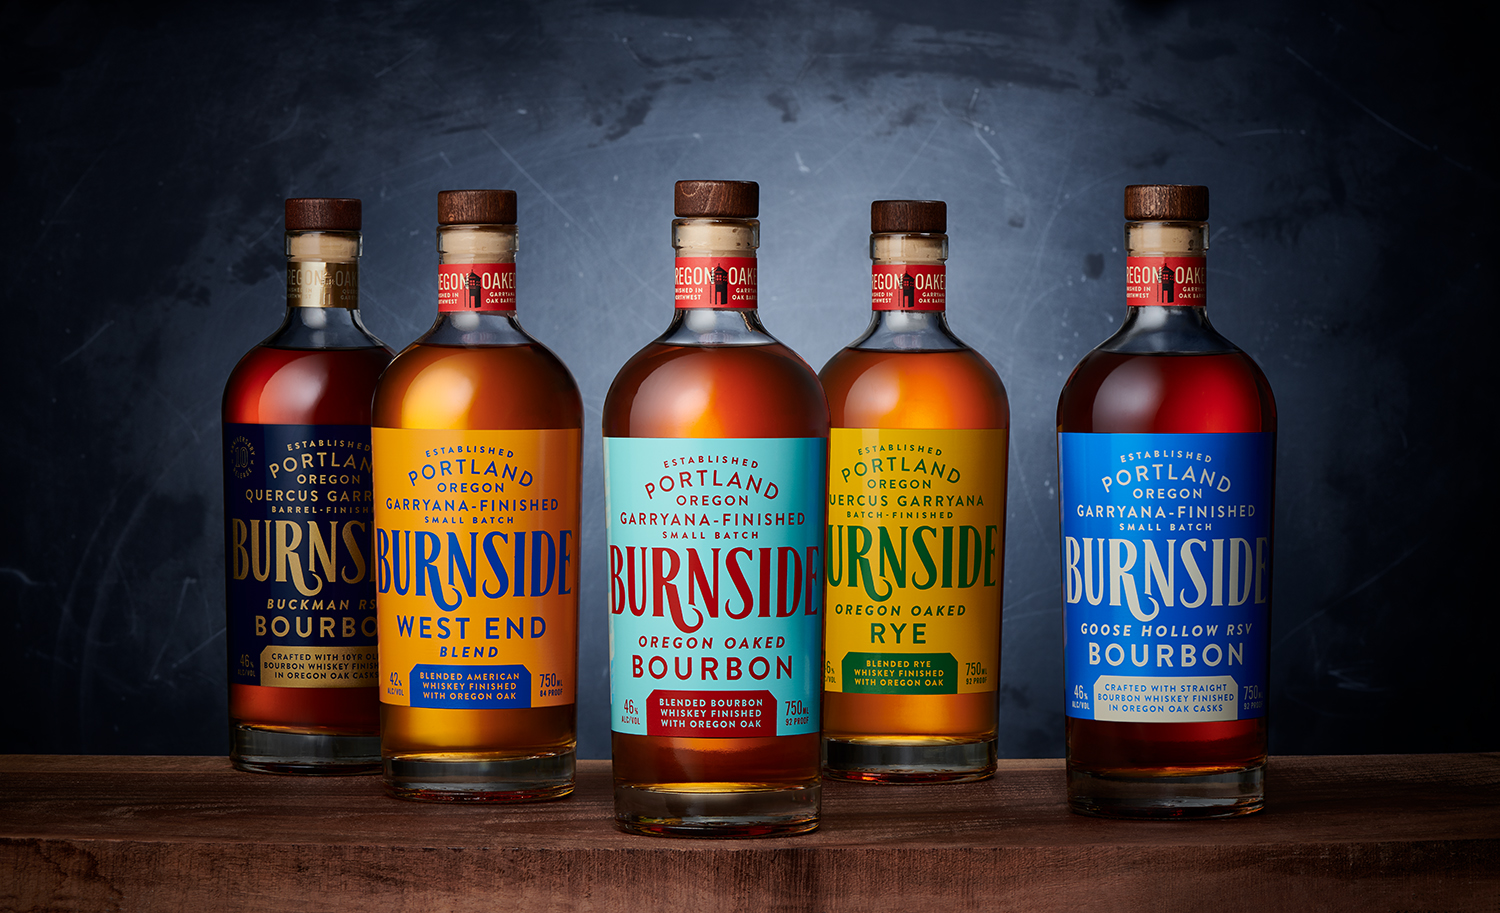 Burnside Bourbon Family